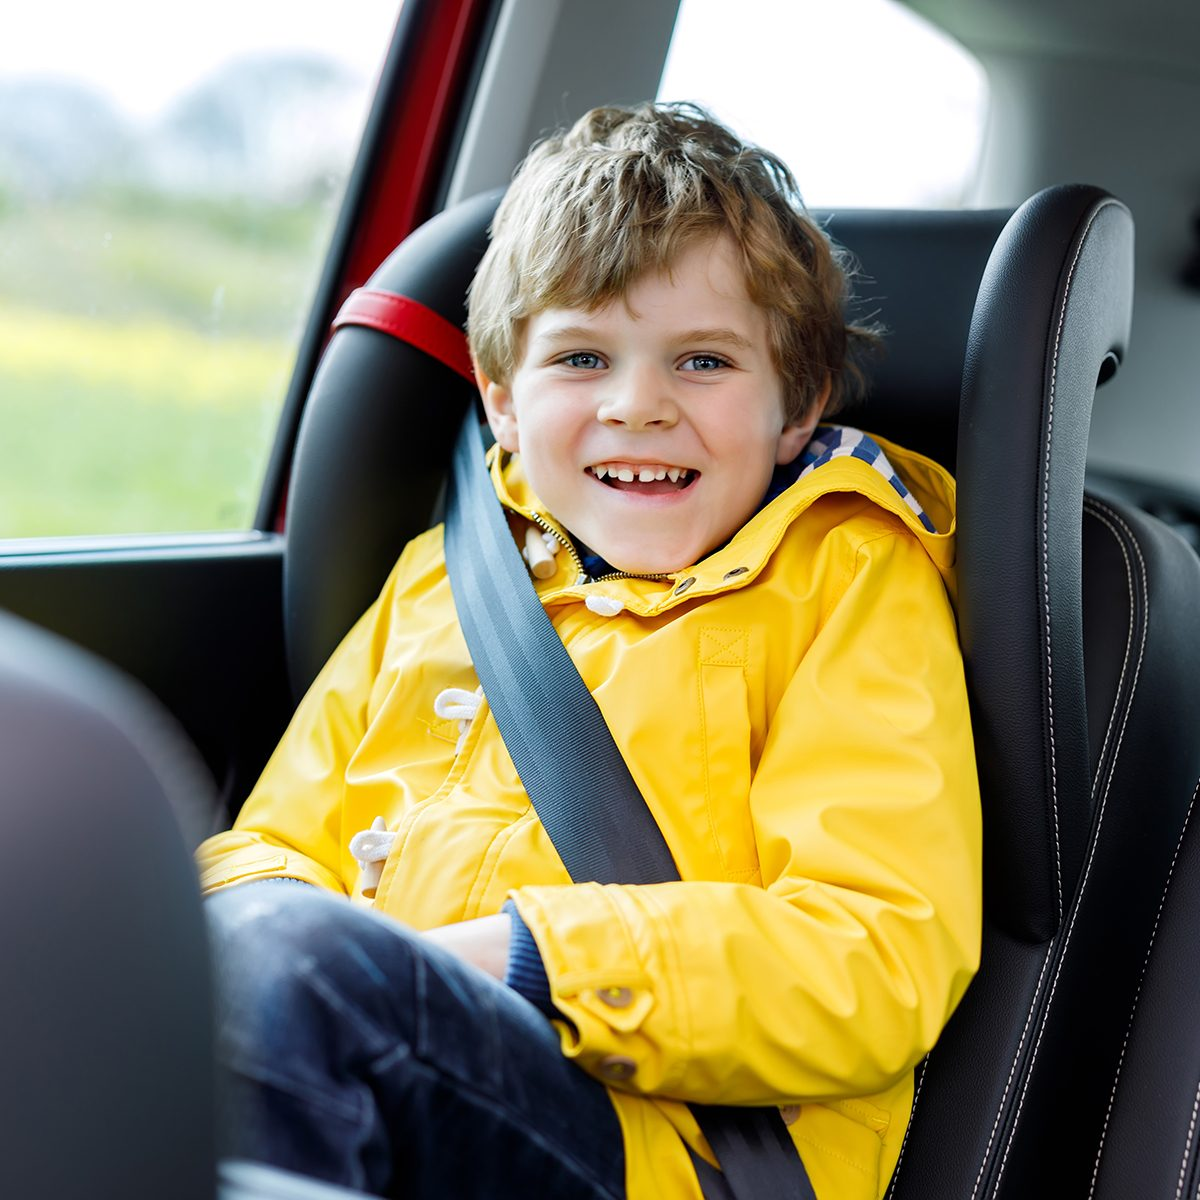 Adorable cute preschool kid boy sitting in car in yellow rain coat.